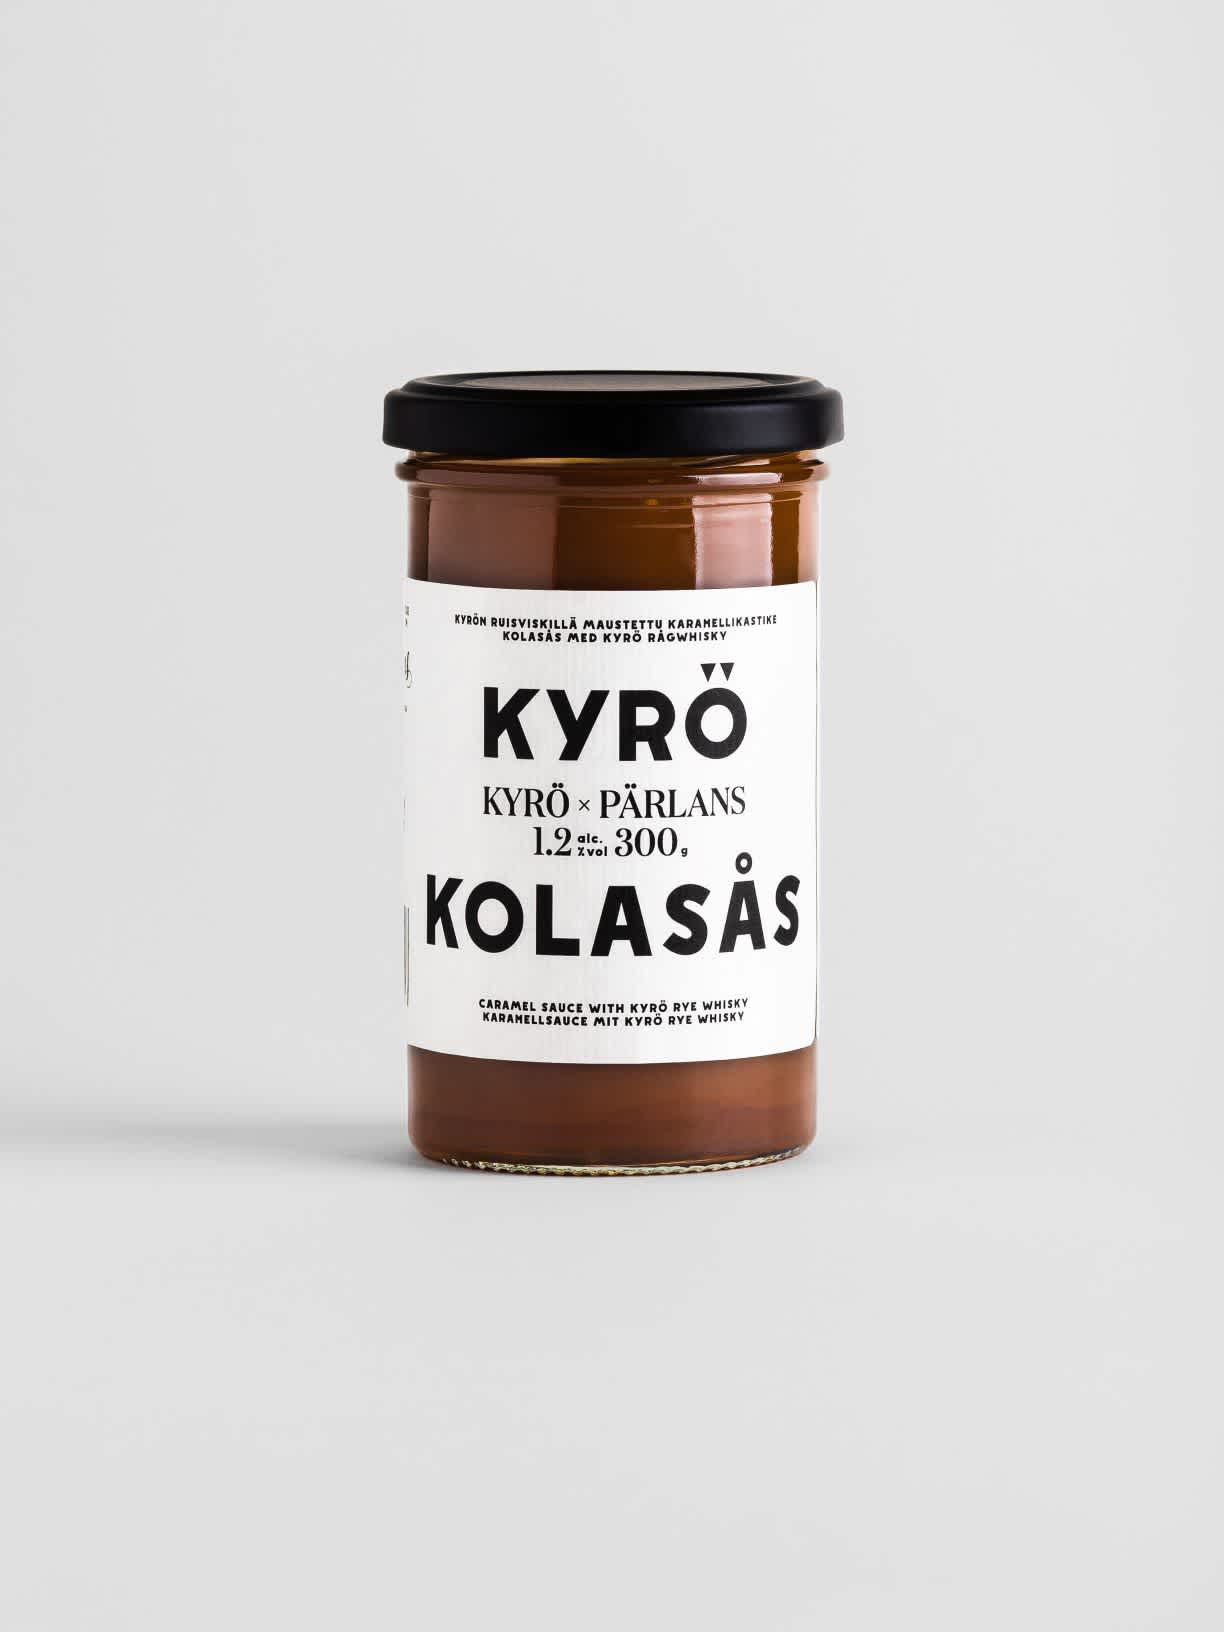 Jar of Kyrö x Pärlans caramel sauce spiced with Finnish rye whisky.